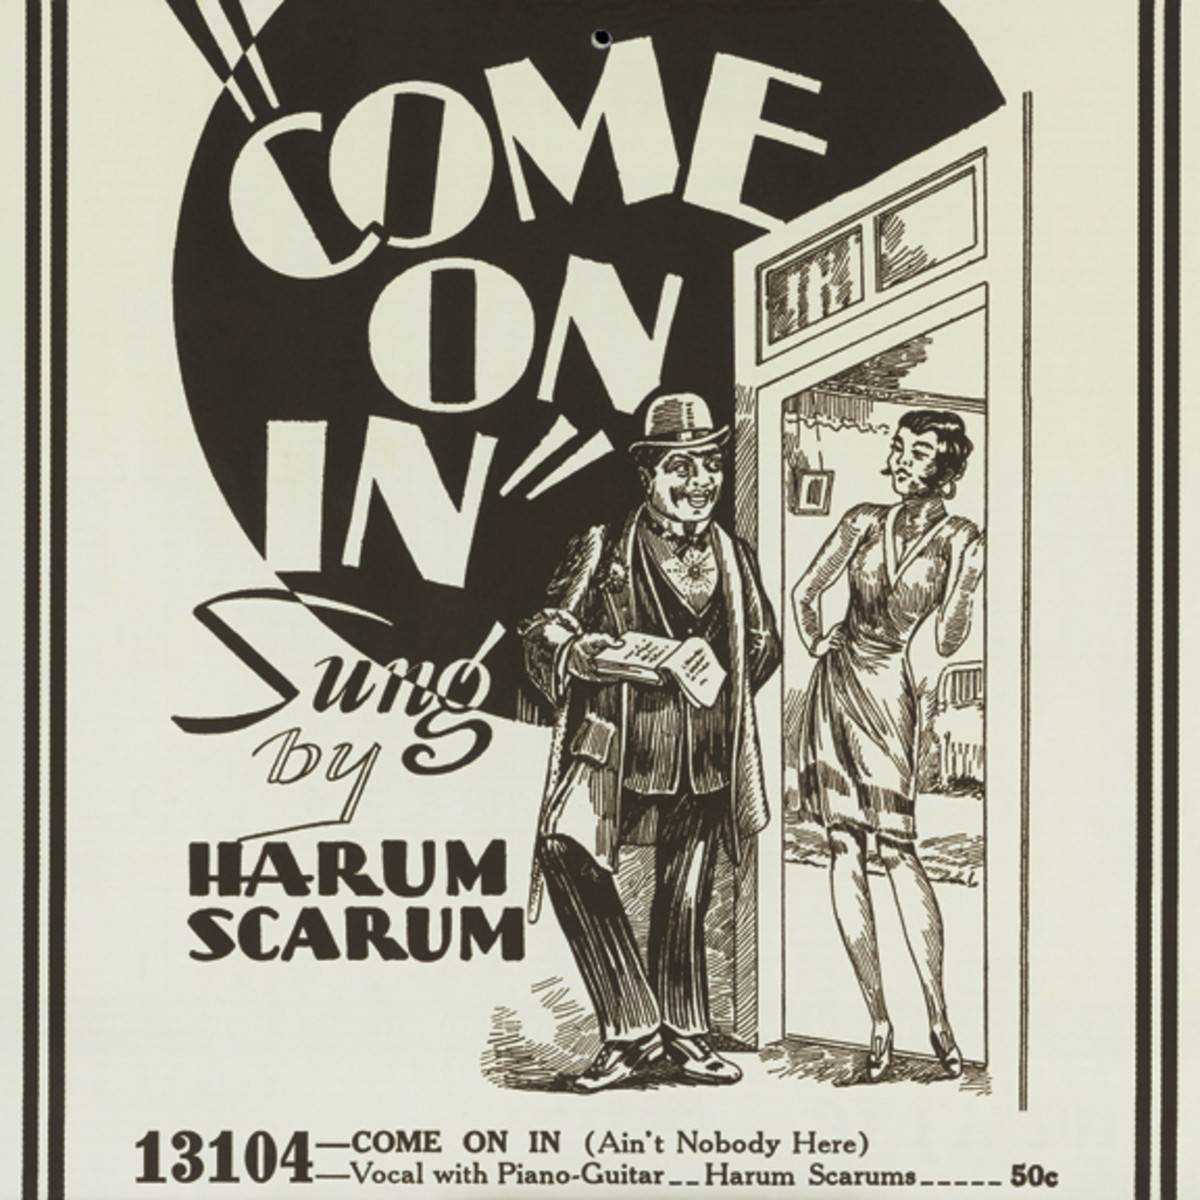 Harum Scarum Come on In advertisement